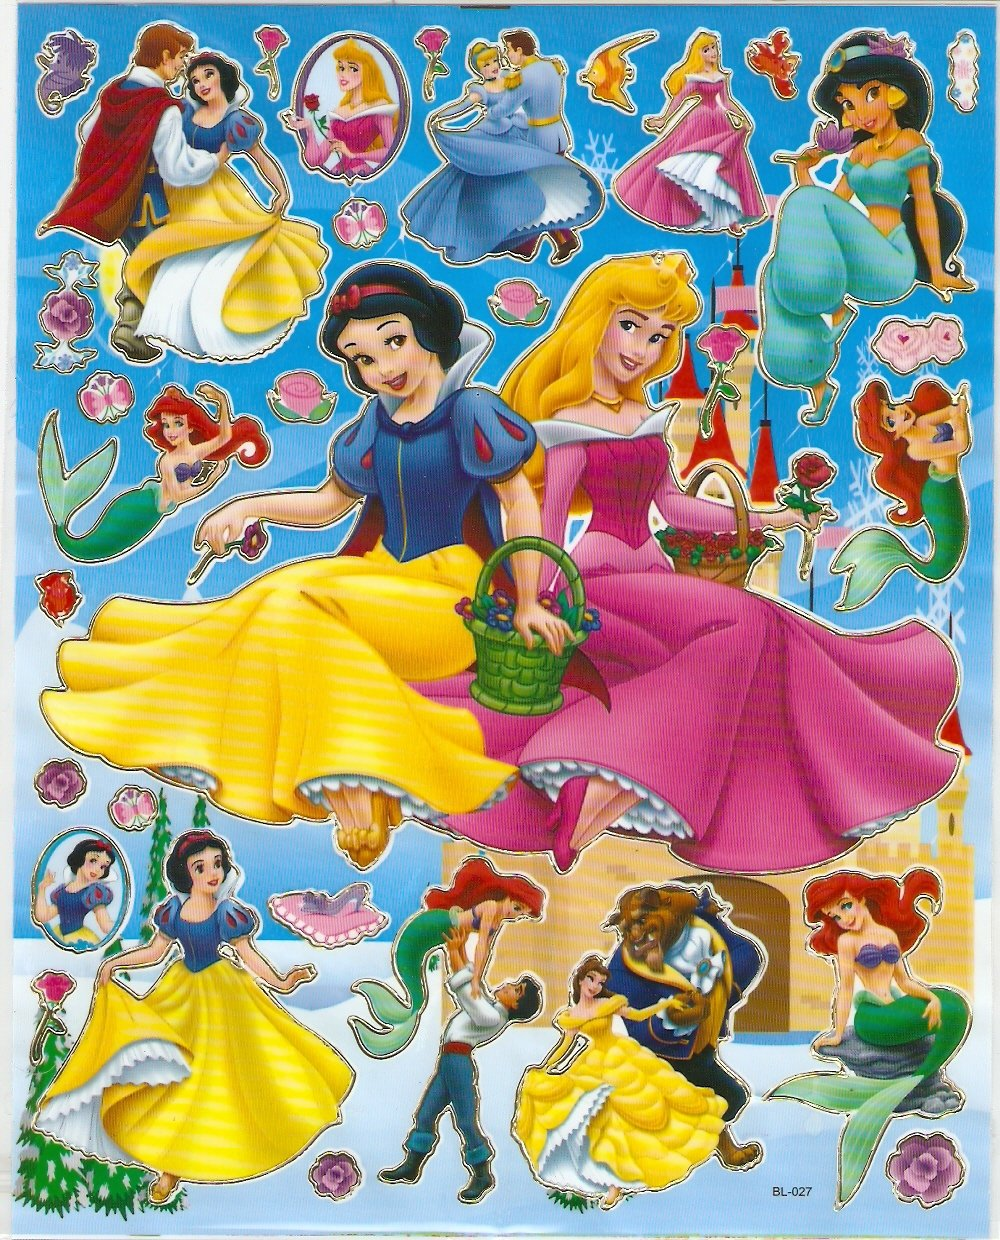 10 Big sheets Princess Sticker Buy 2 lots Bonus 1 #DP BL027